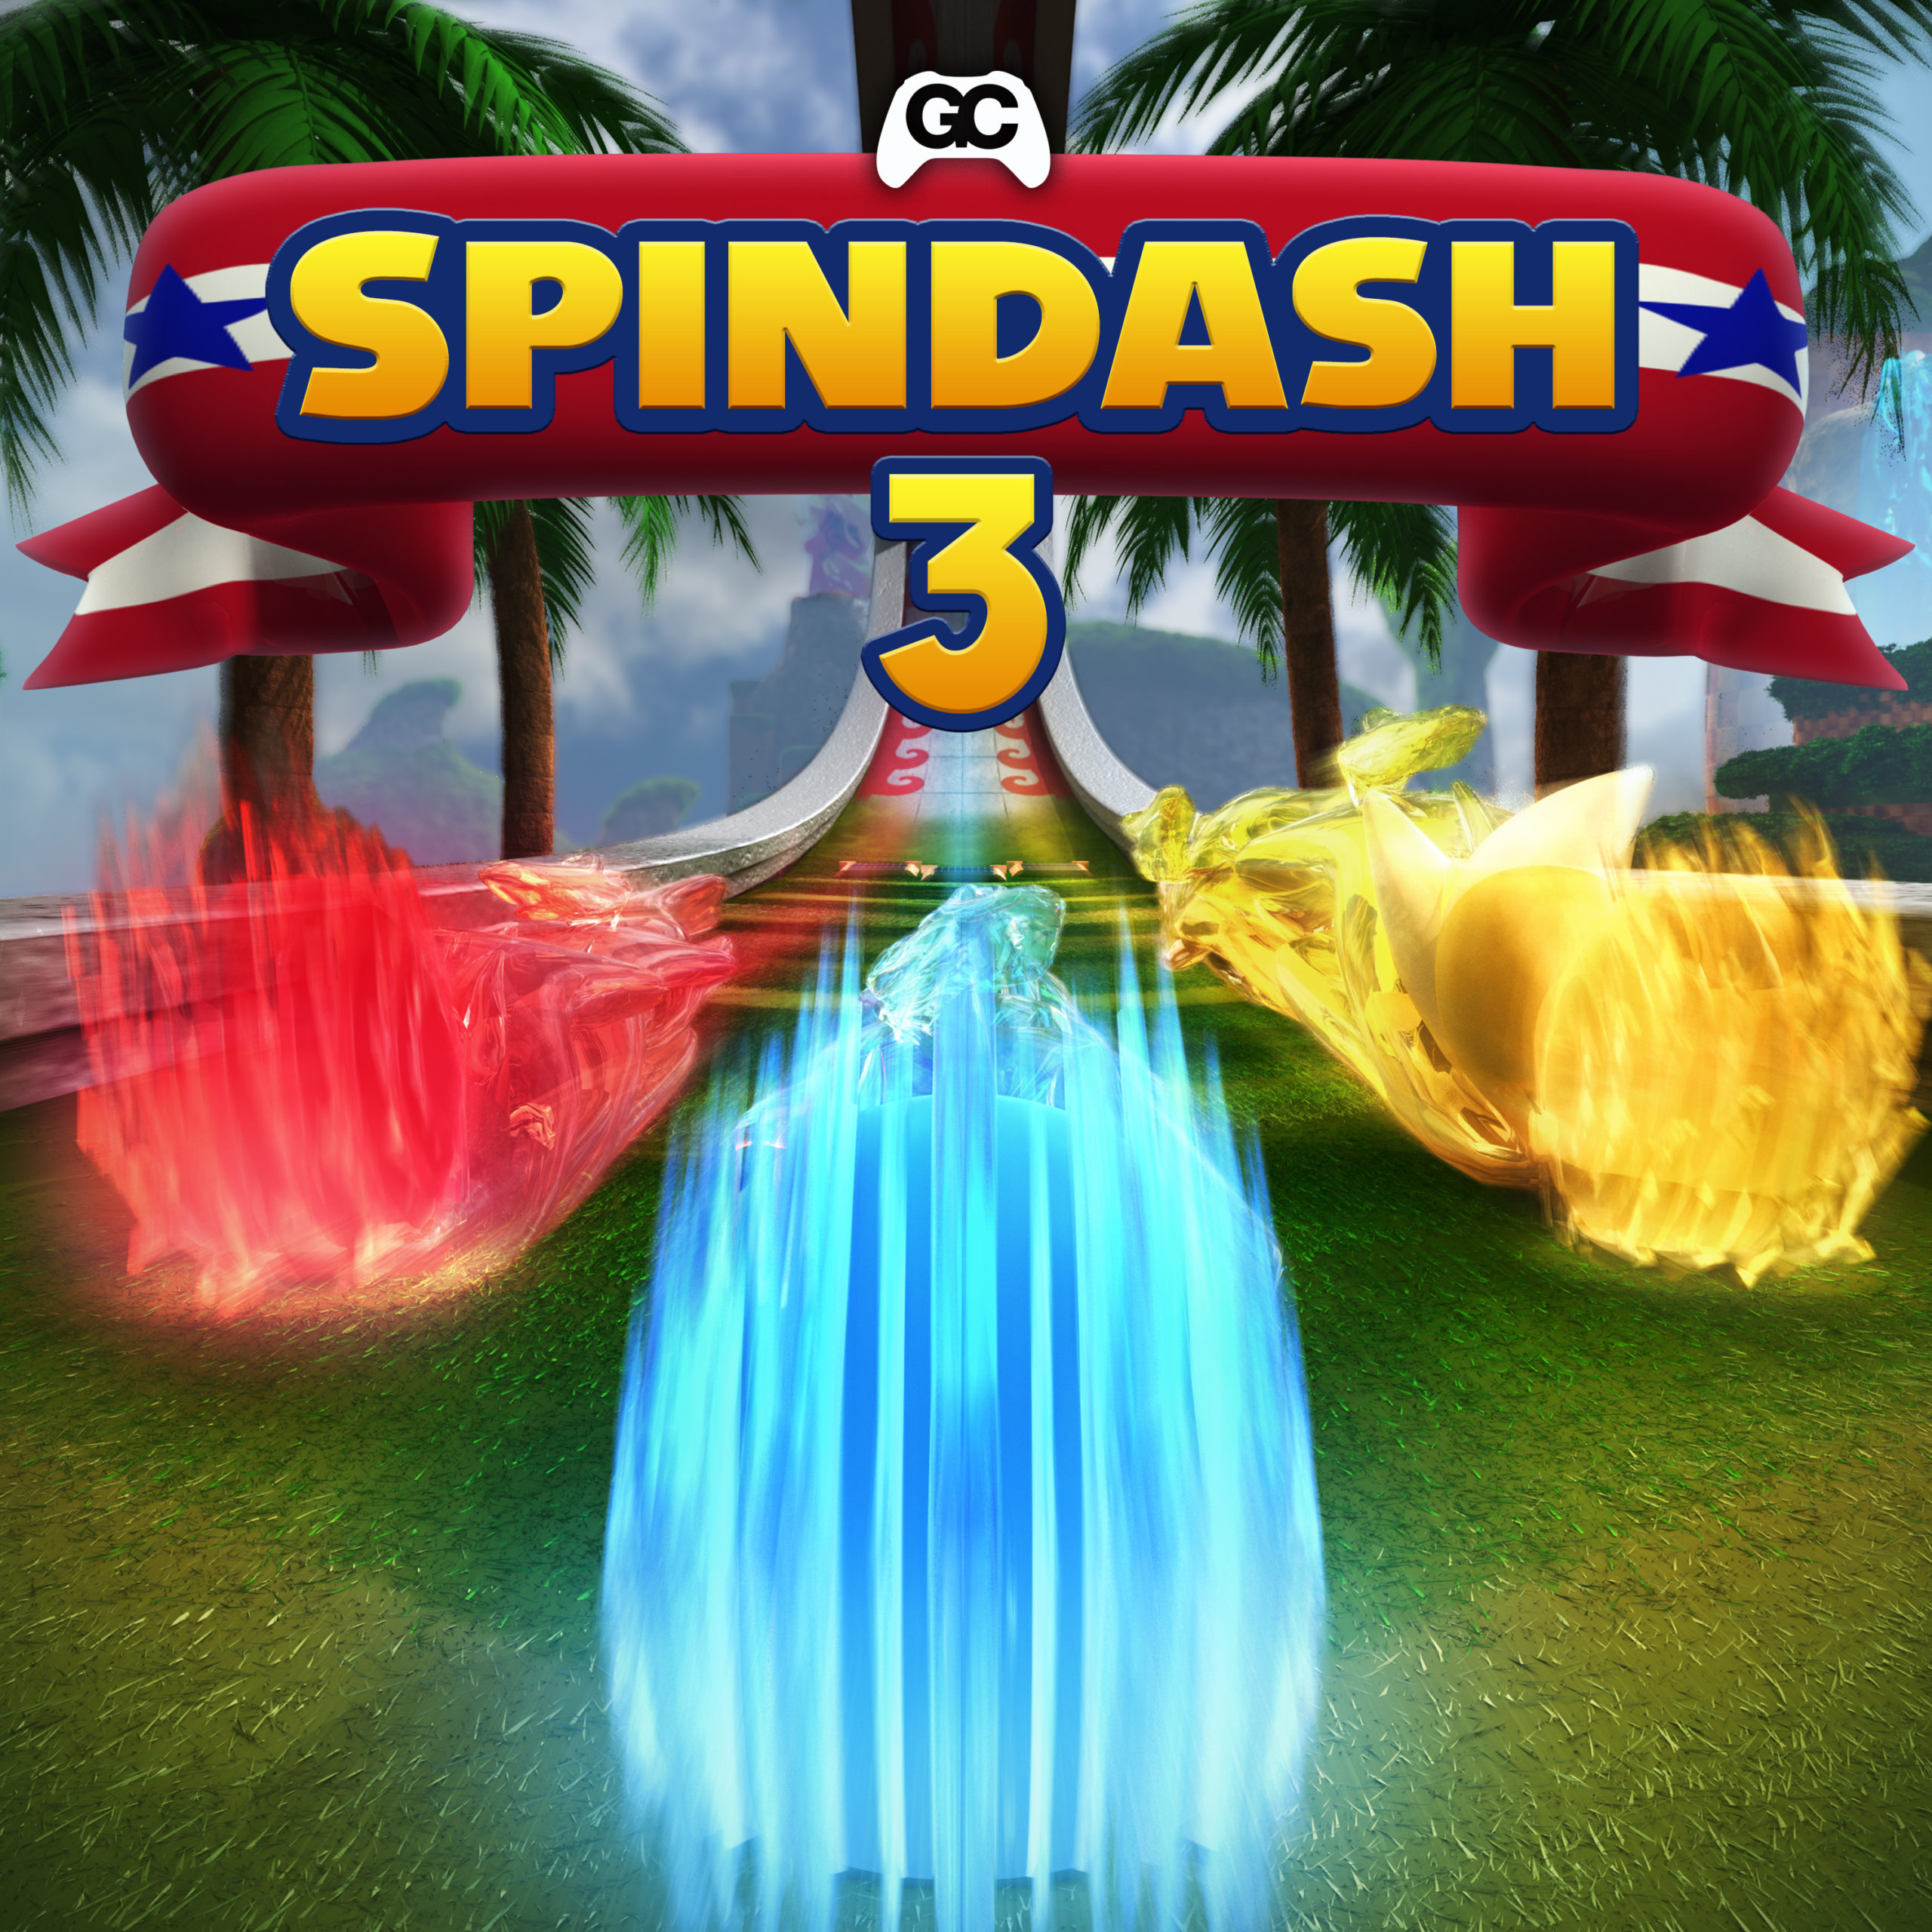 Spindash 3